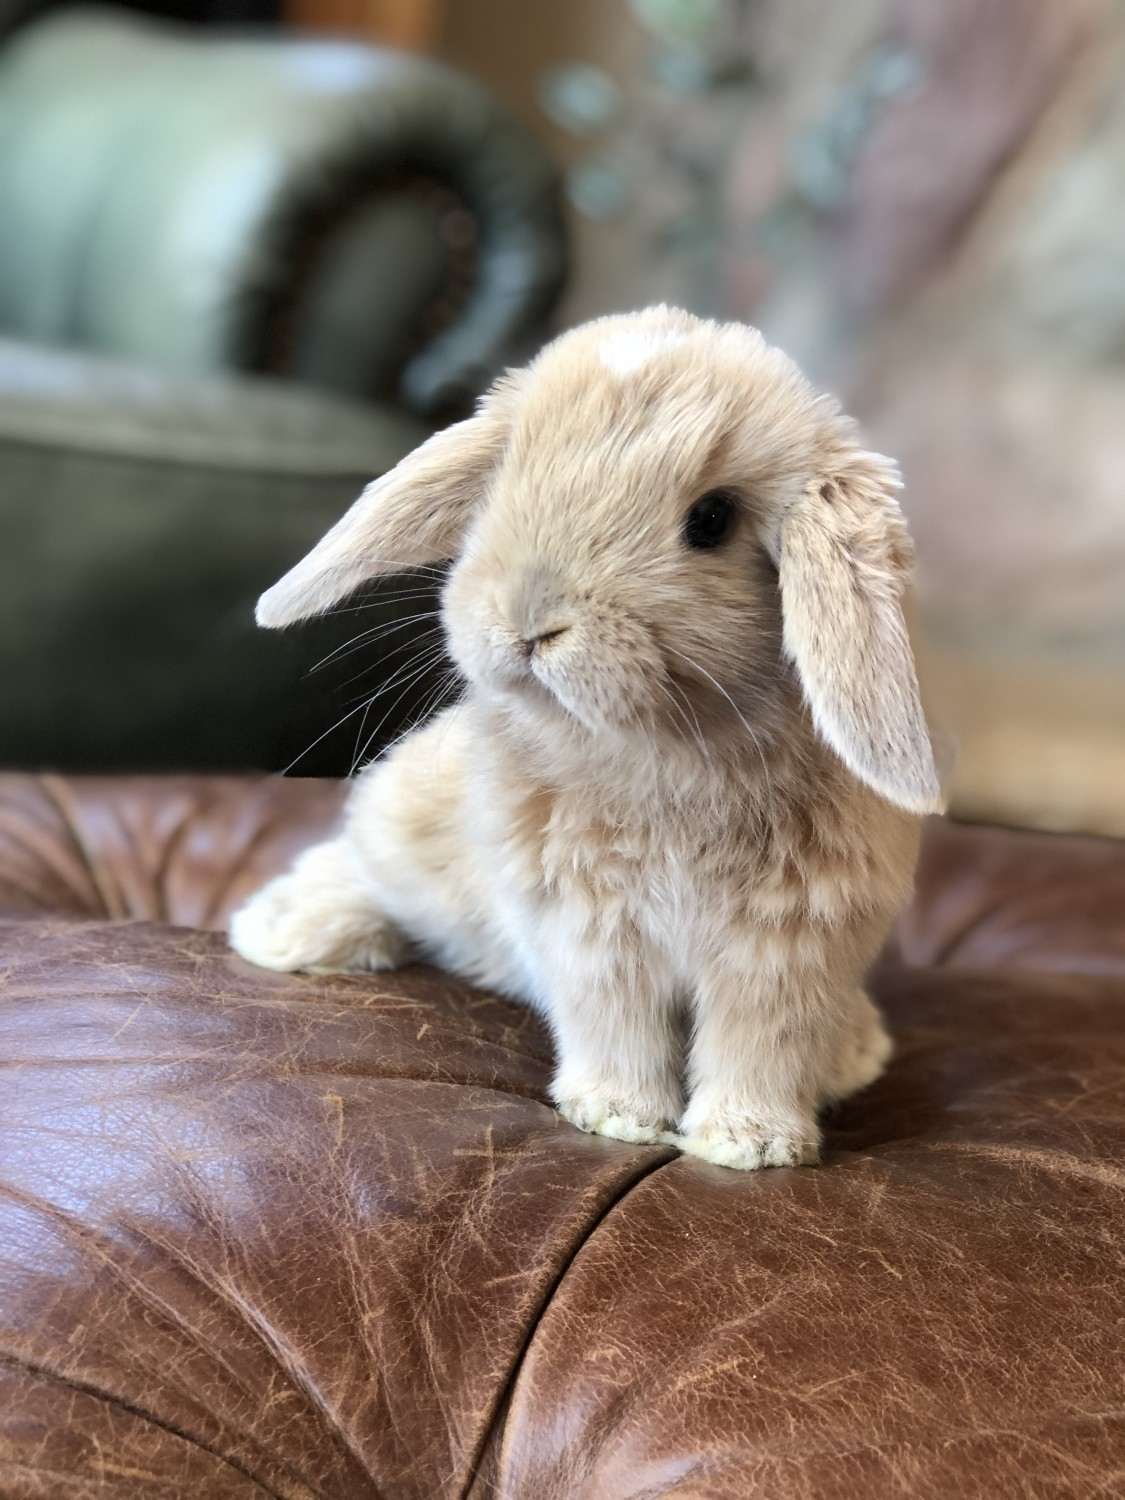 Live Bunnies For Sale Near Me : bunnies, Bunnies, Viewer